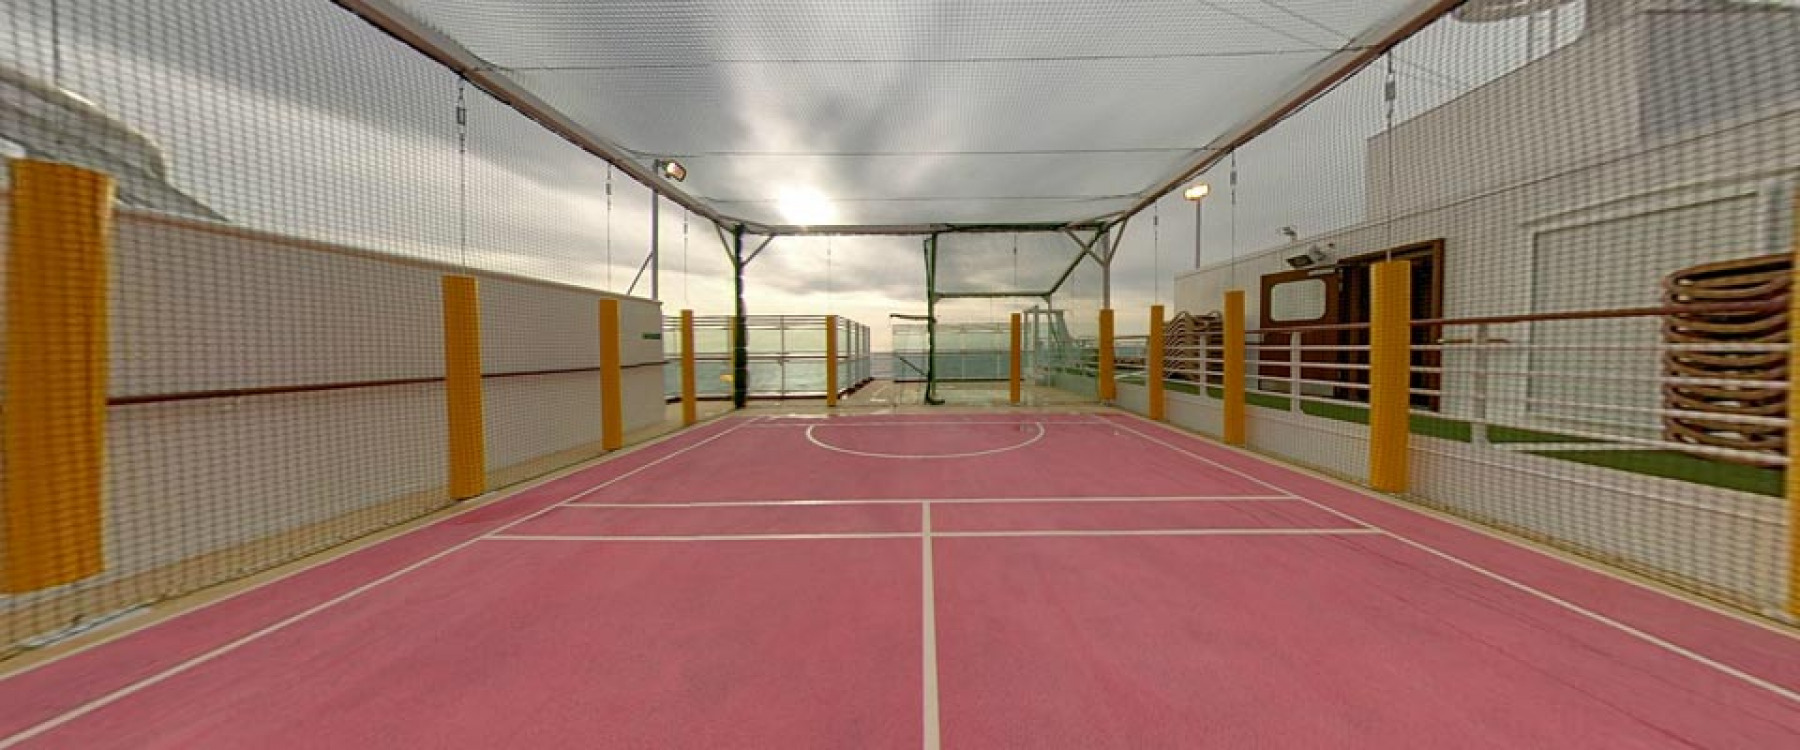 P&O Cruises Azura Interior Sports Court.jpg